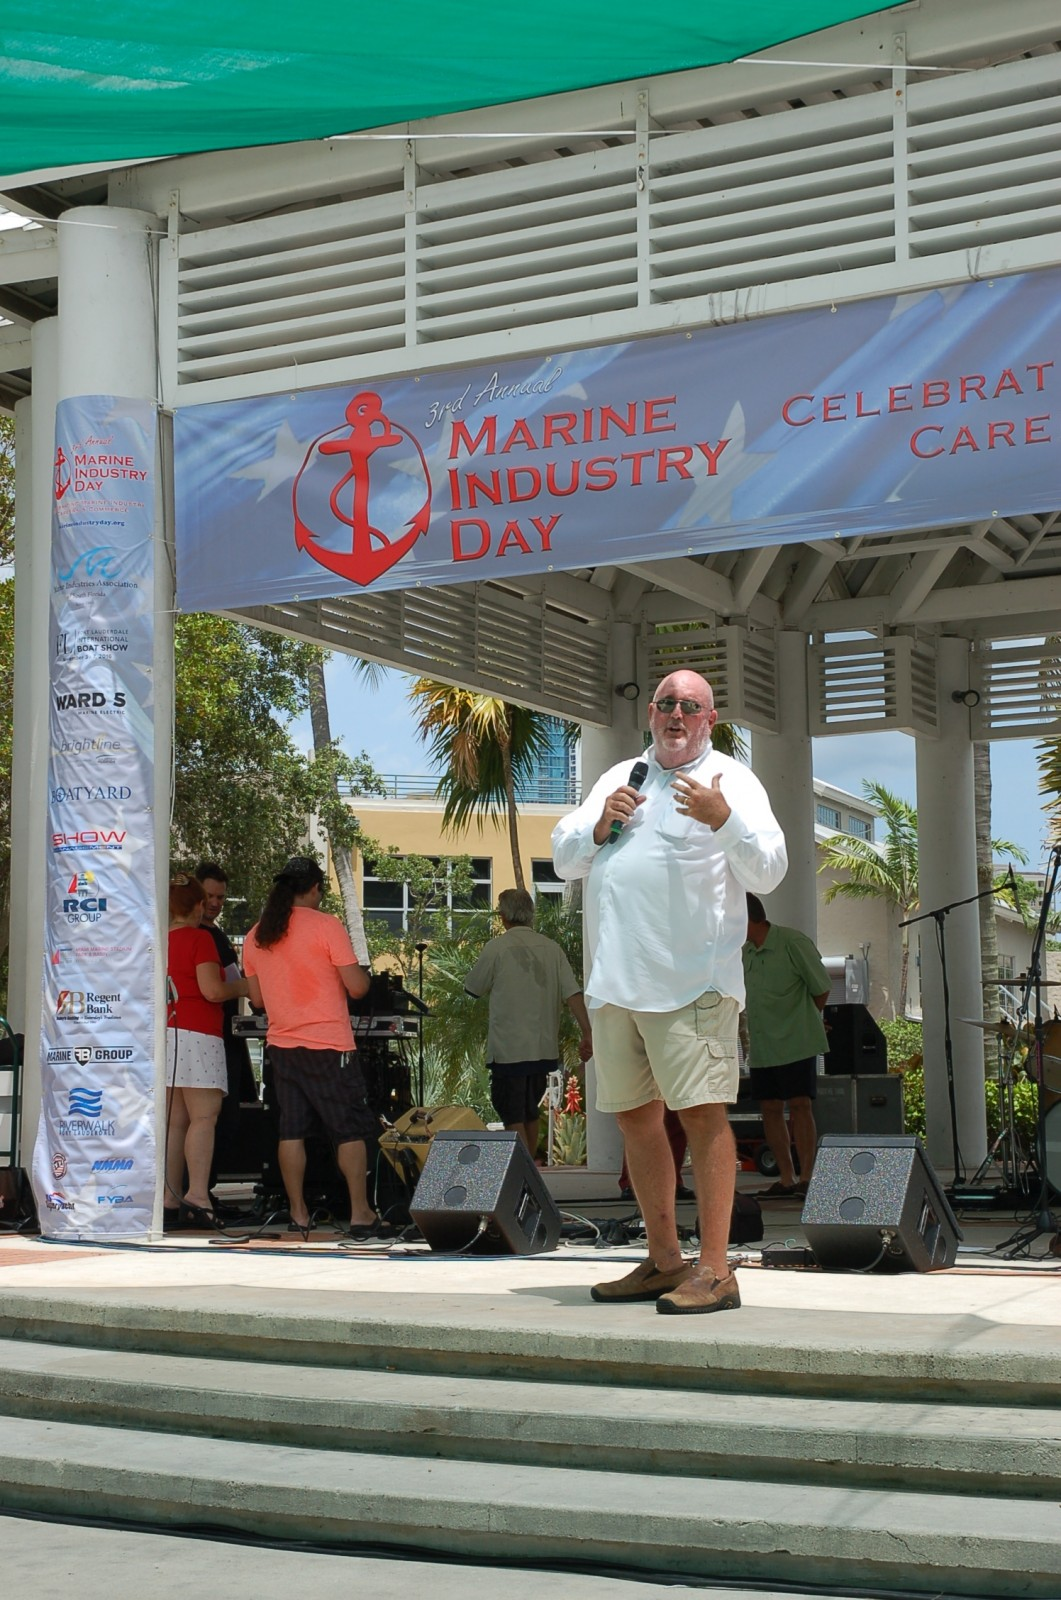 MARINE industry day 6-18-16 dc (107)